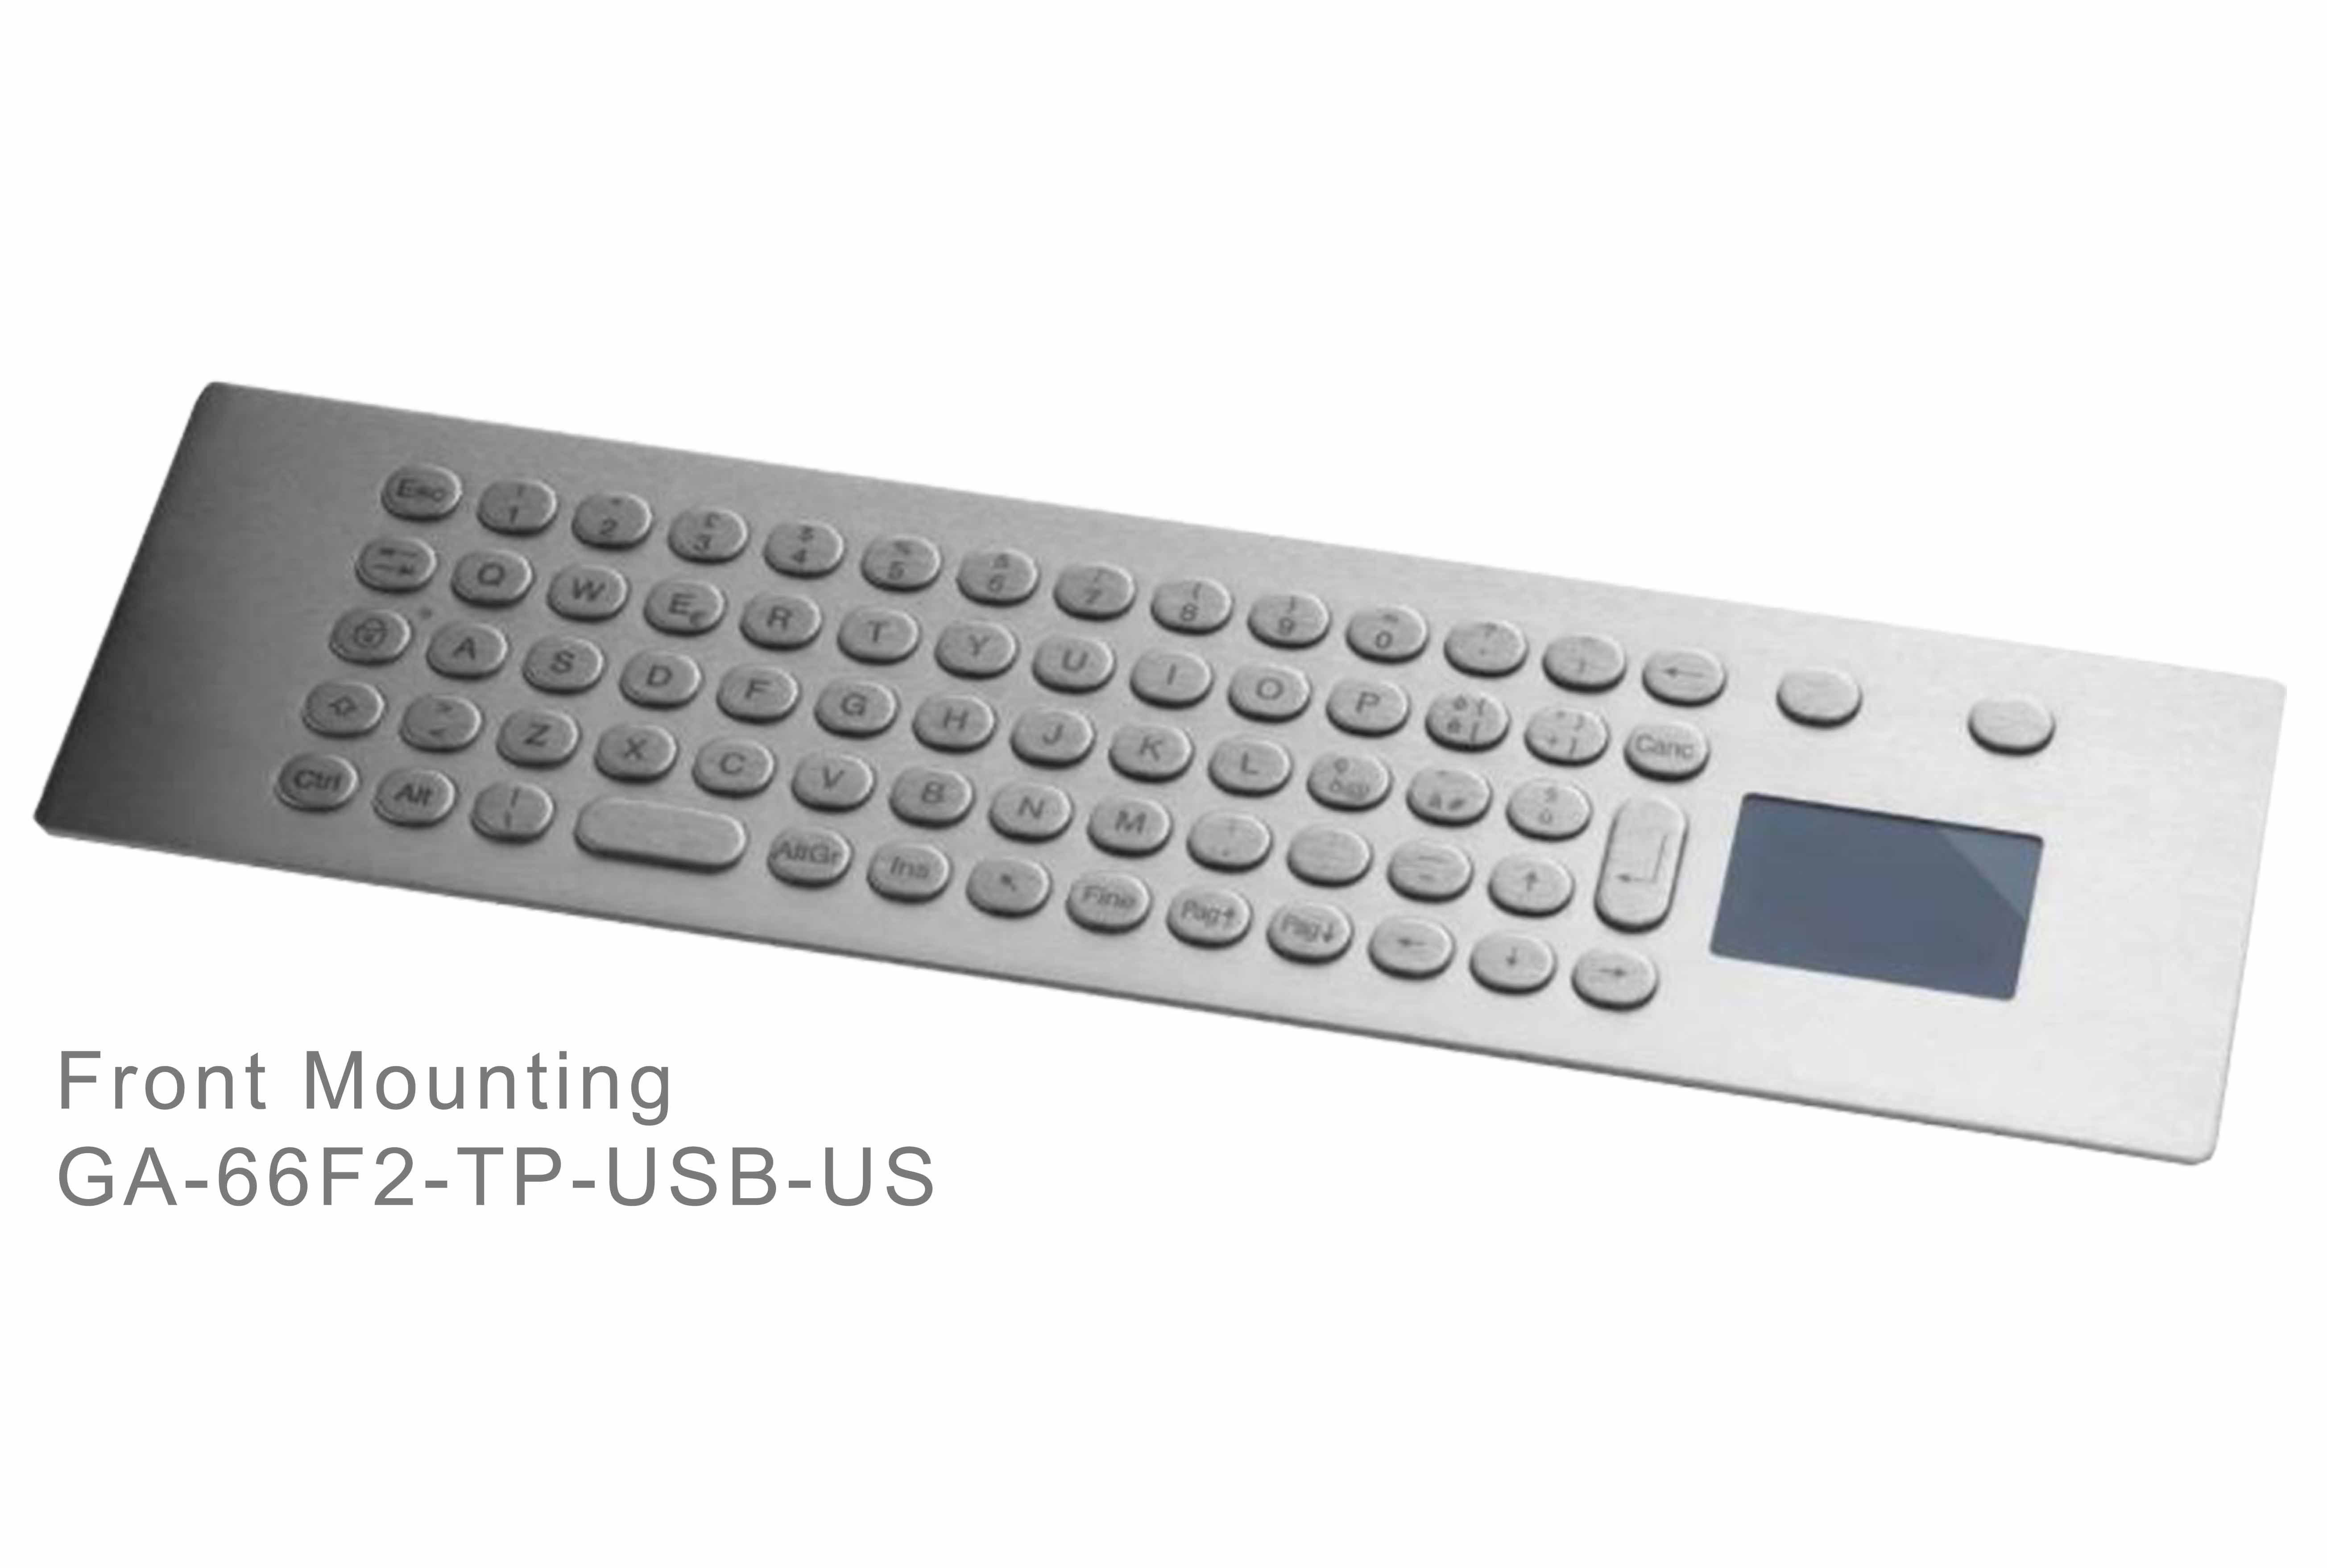 GA-Industrial-Italian Brand-60+Keys Touchpad Front Mounting-L